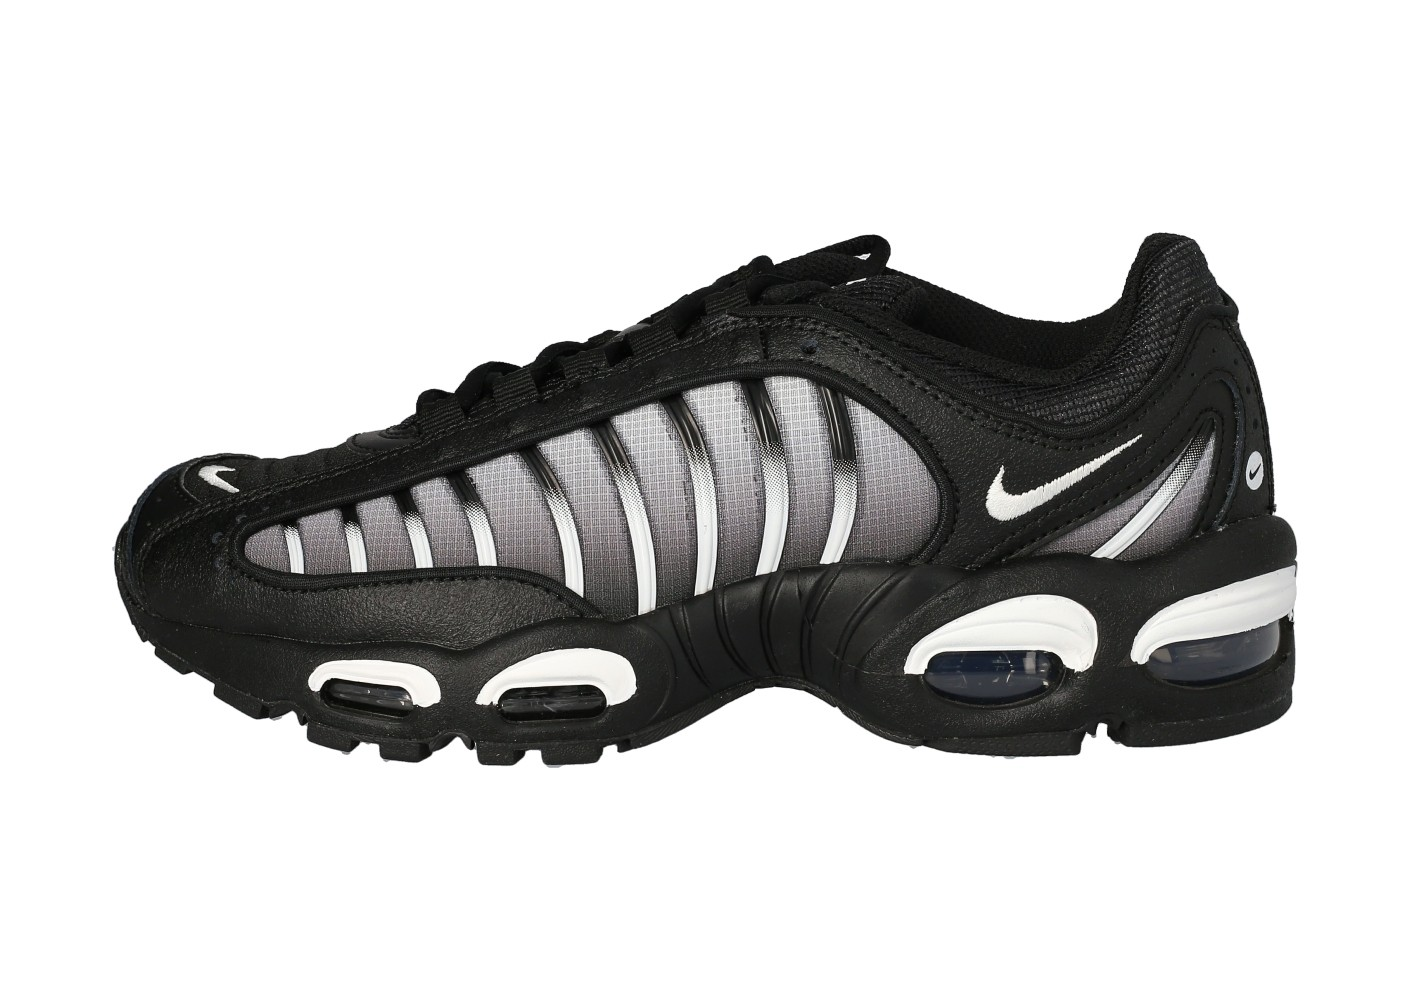 Nike Air Max Tailwind IV Gradient noire Chaussures Baskets